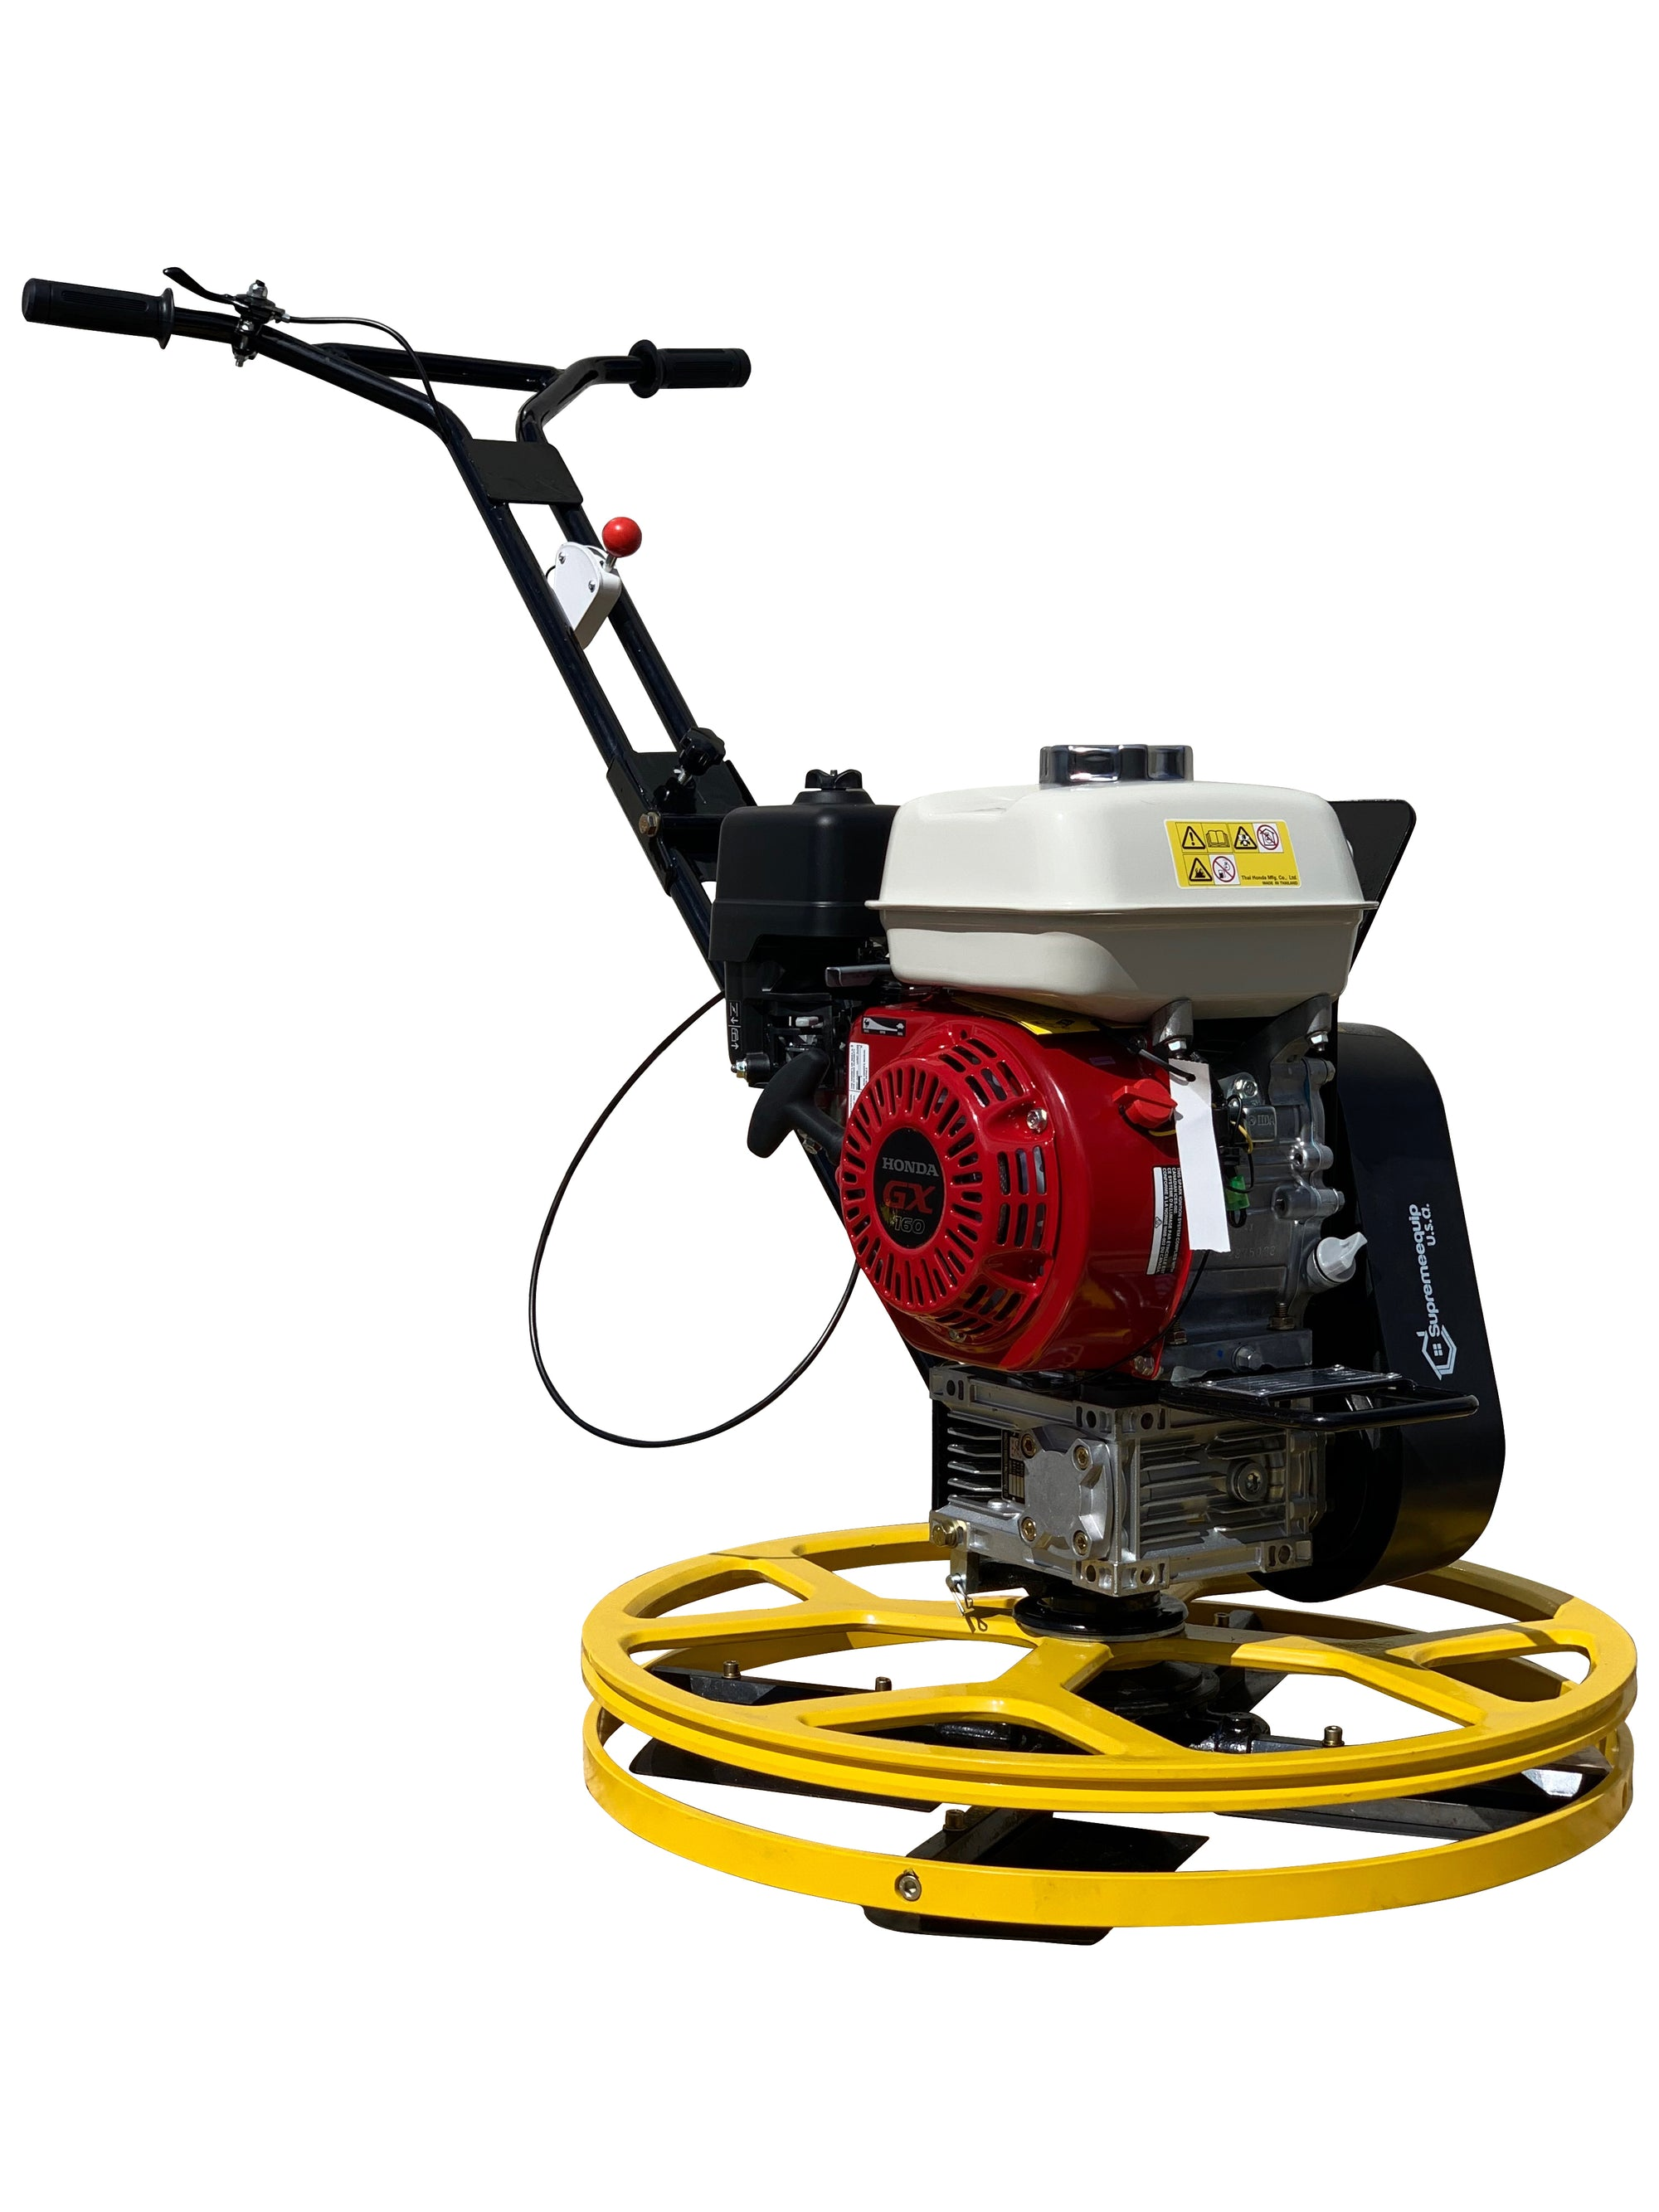 "GX160 Genuine Honda 24"" Power Trowel With 3 year engine warranty"